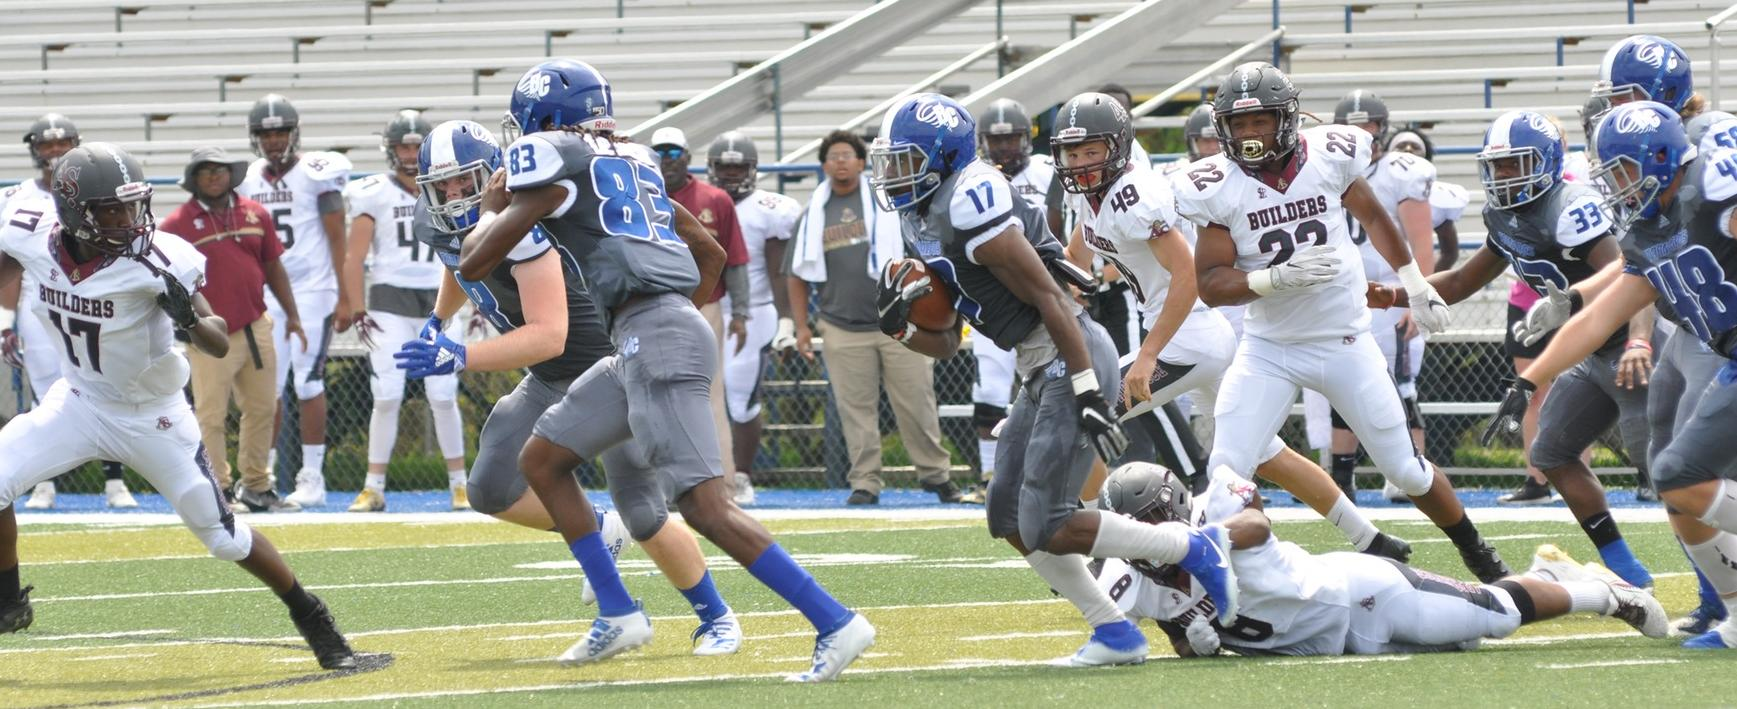 Junior Jamerial Parks returns a kickoff in Brevard's canceled home-opener vs. Apprentice. (Courtesy of Tommy Moss)